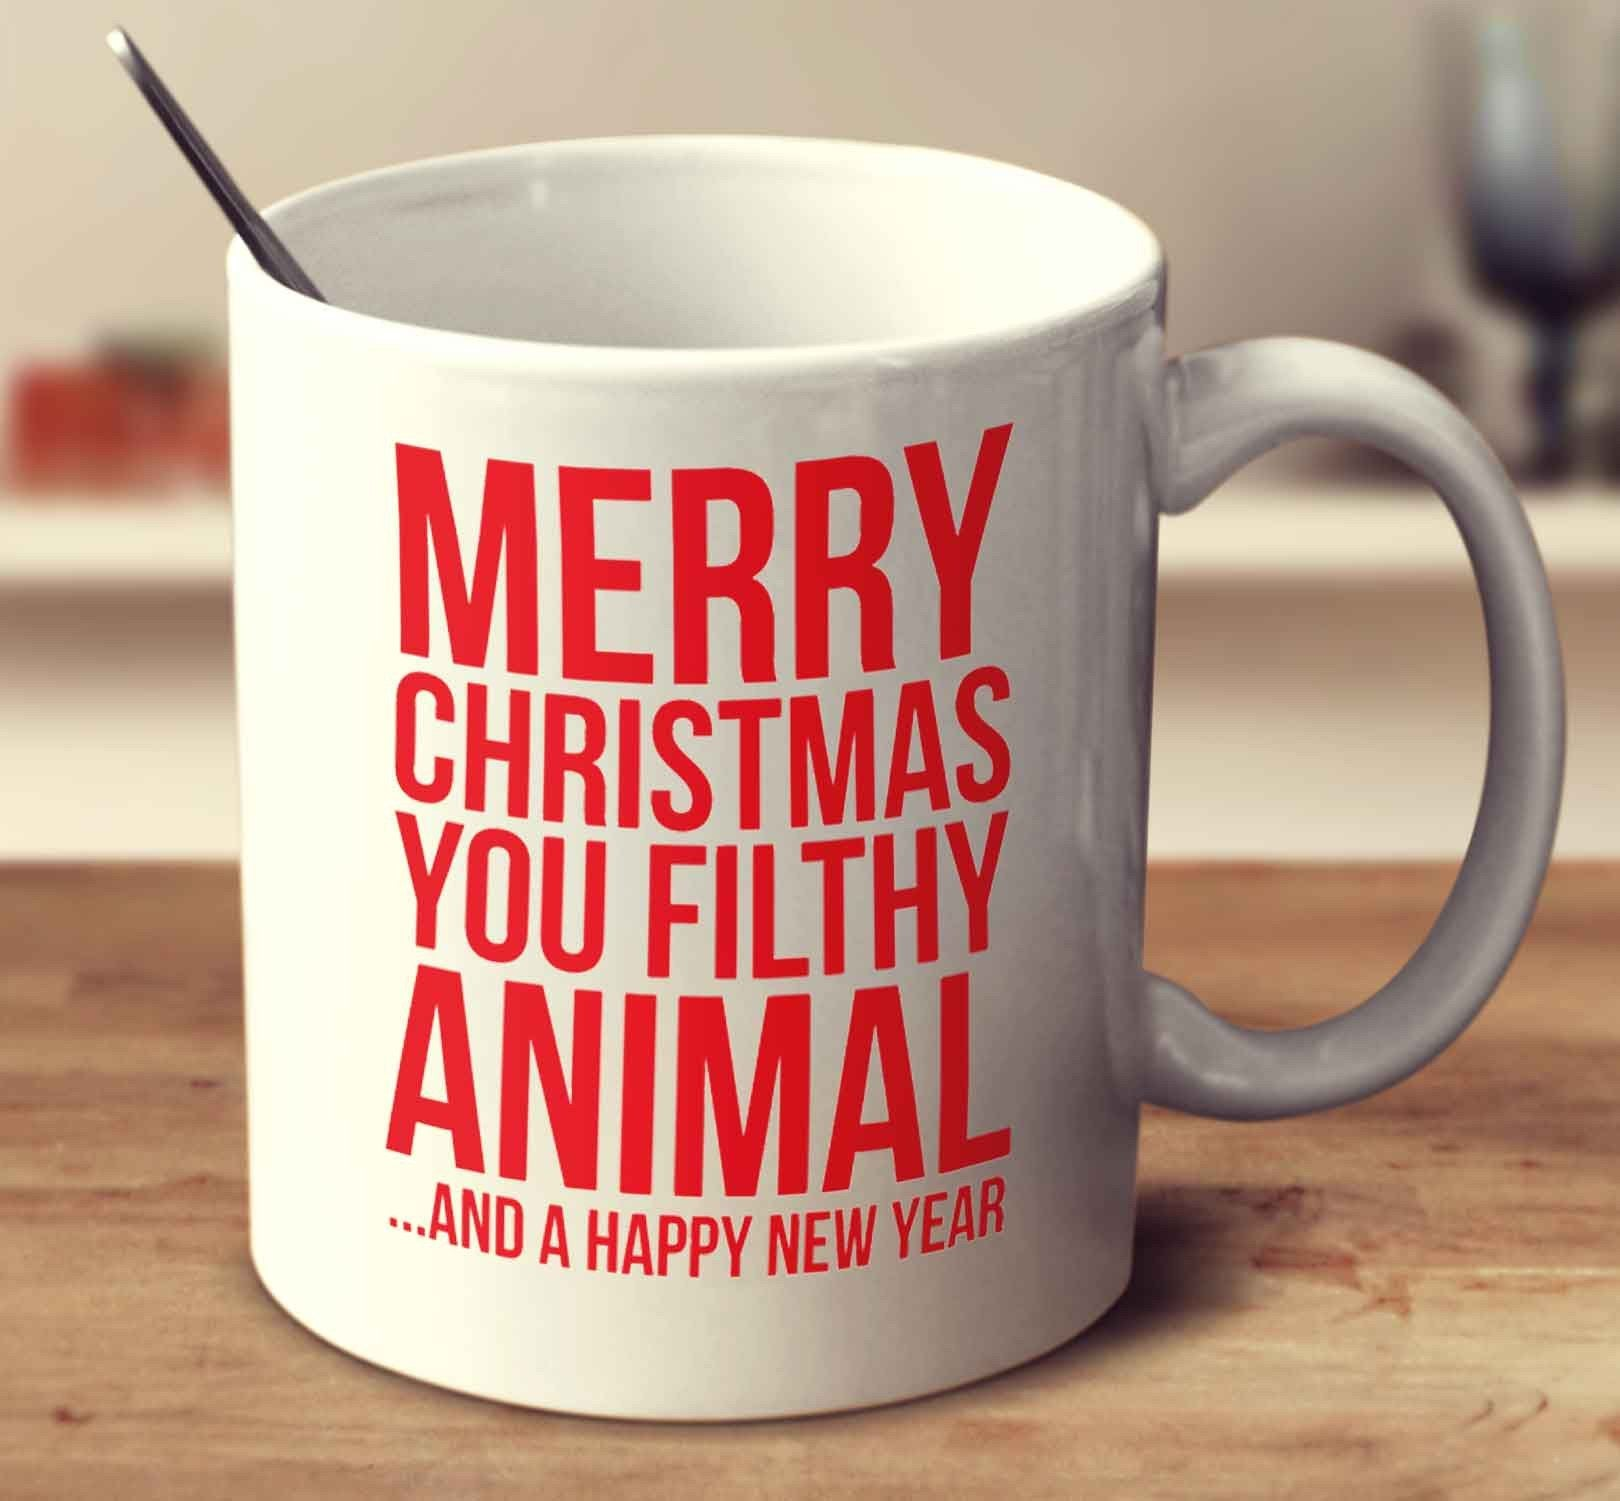 collection home products merry christmas you filthy animal - Merry Christmas You Filthy Animal